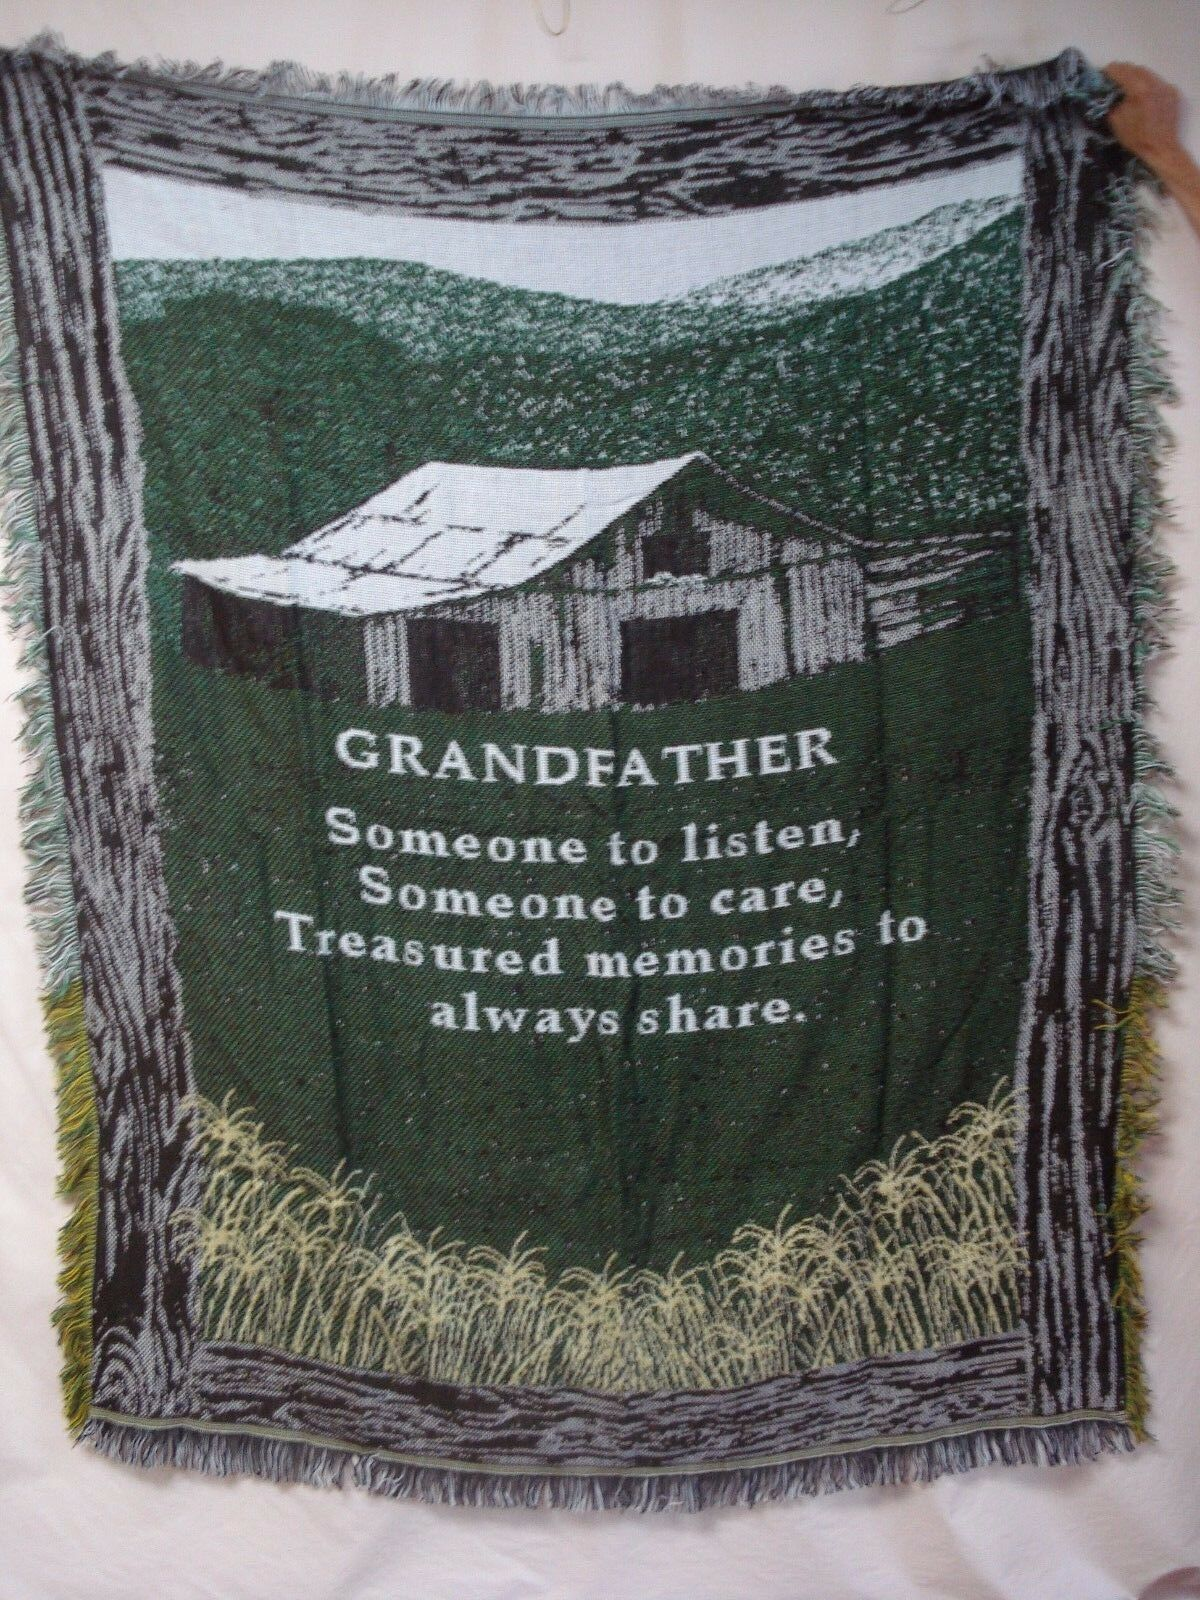 USA Made NWOT Grandfather Farm House Tapestry Throw Blanket Afghan